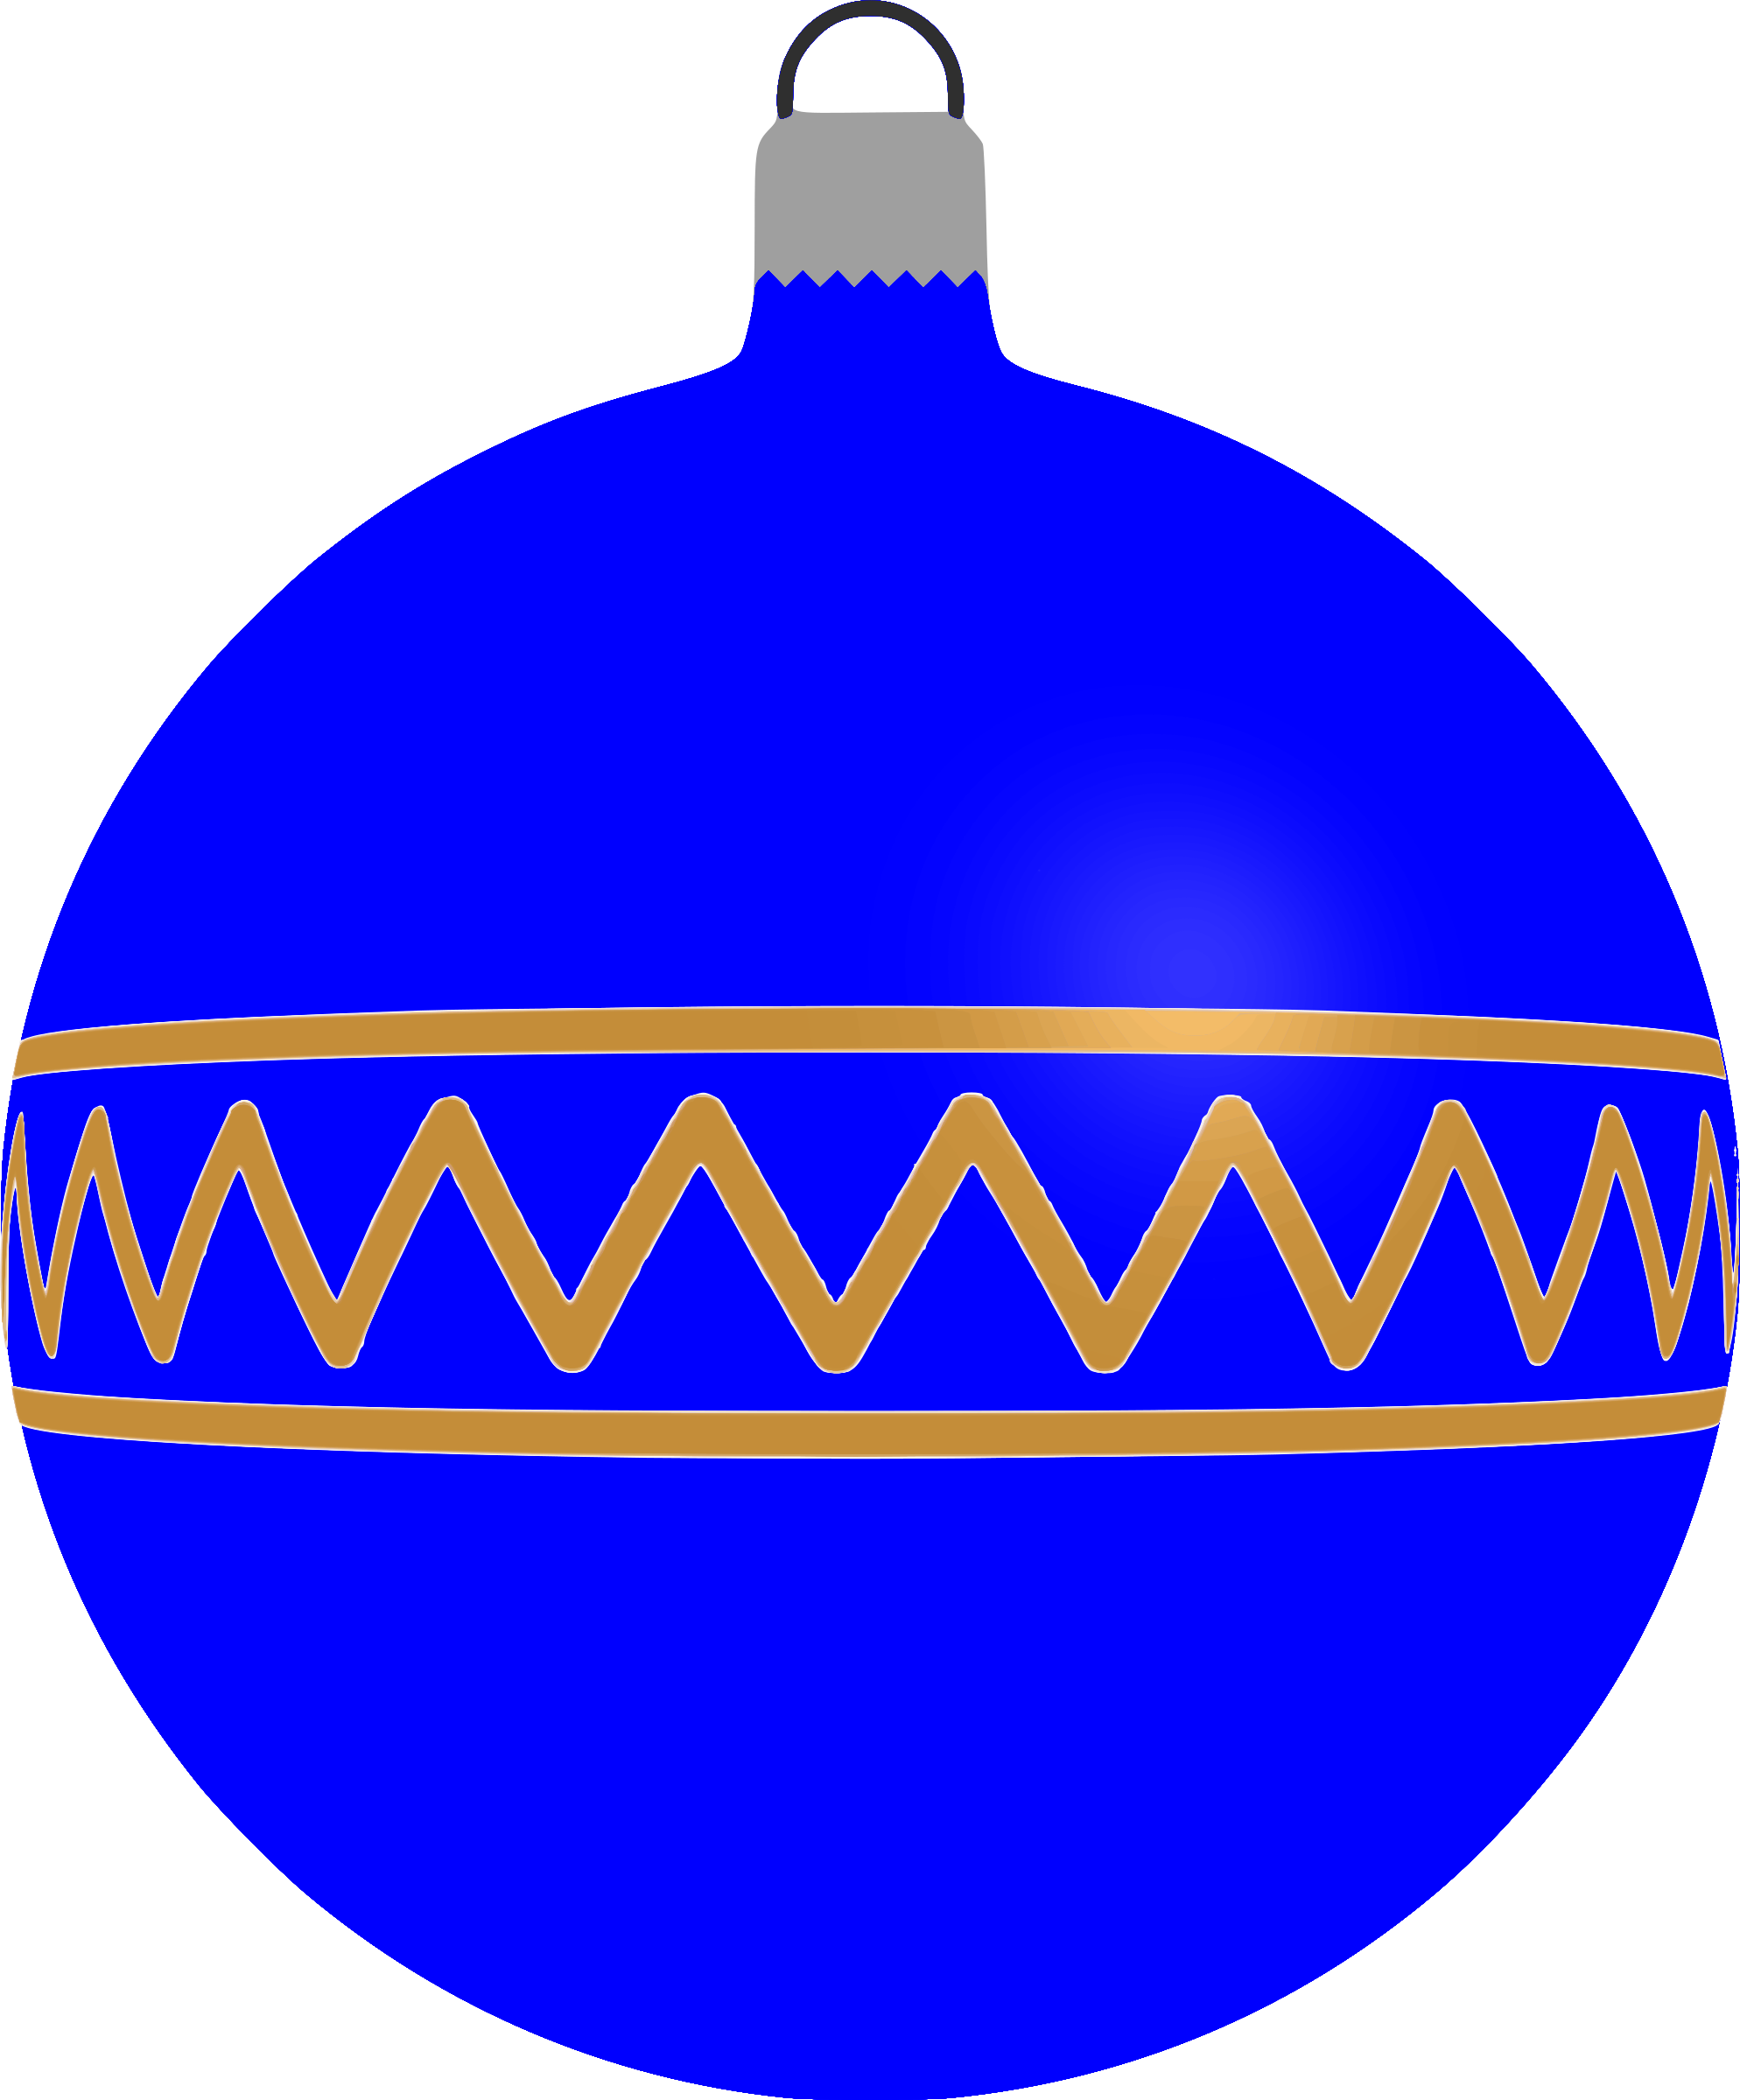 Patterned bauble 1 (blue) by Firkin